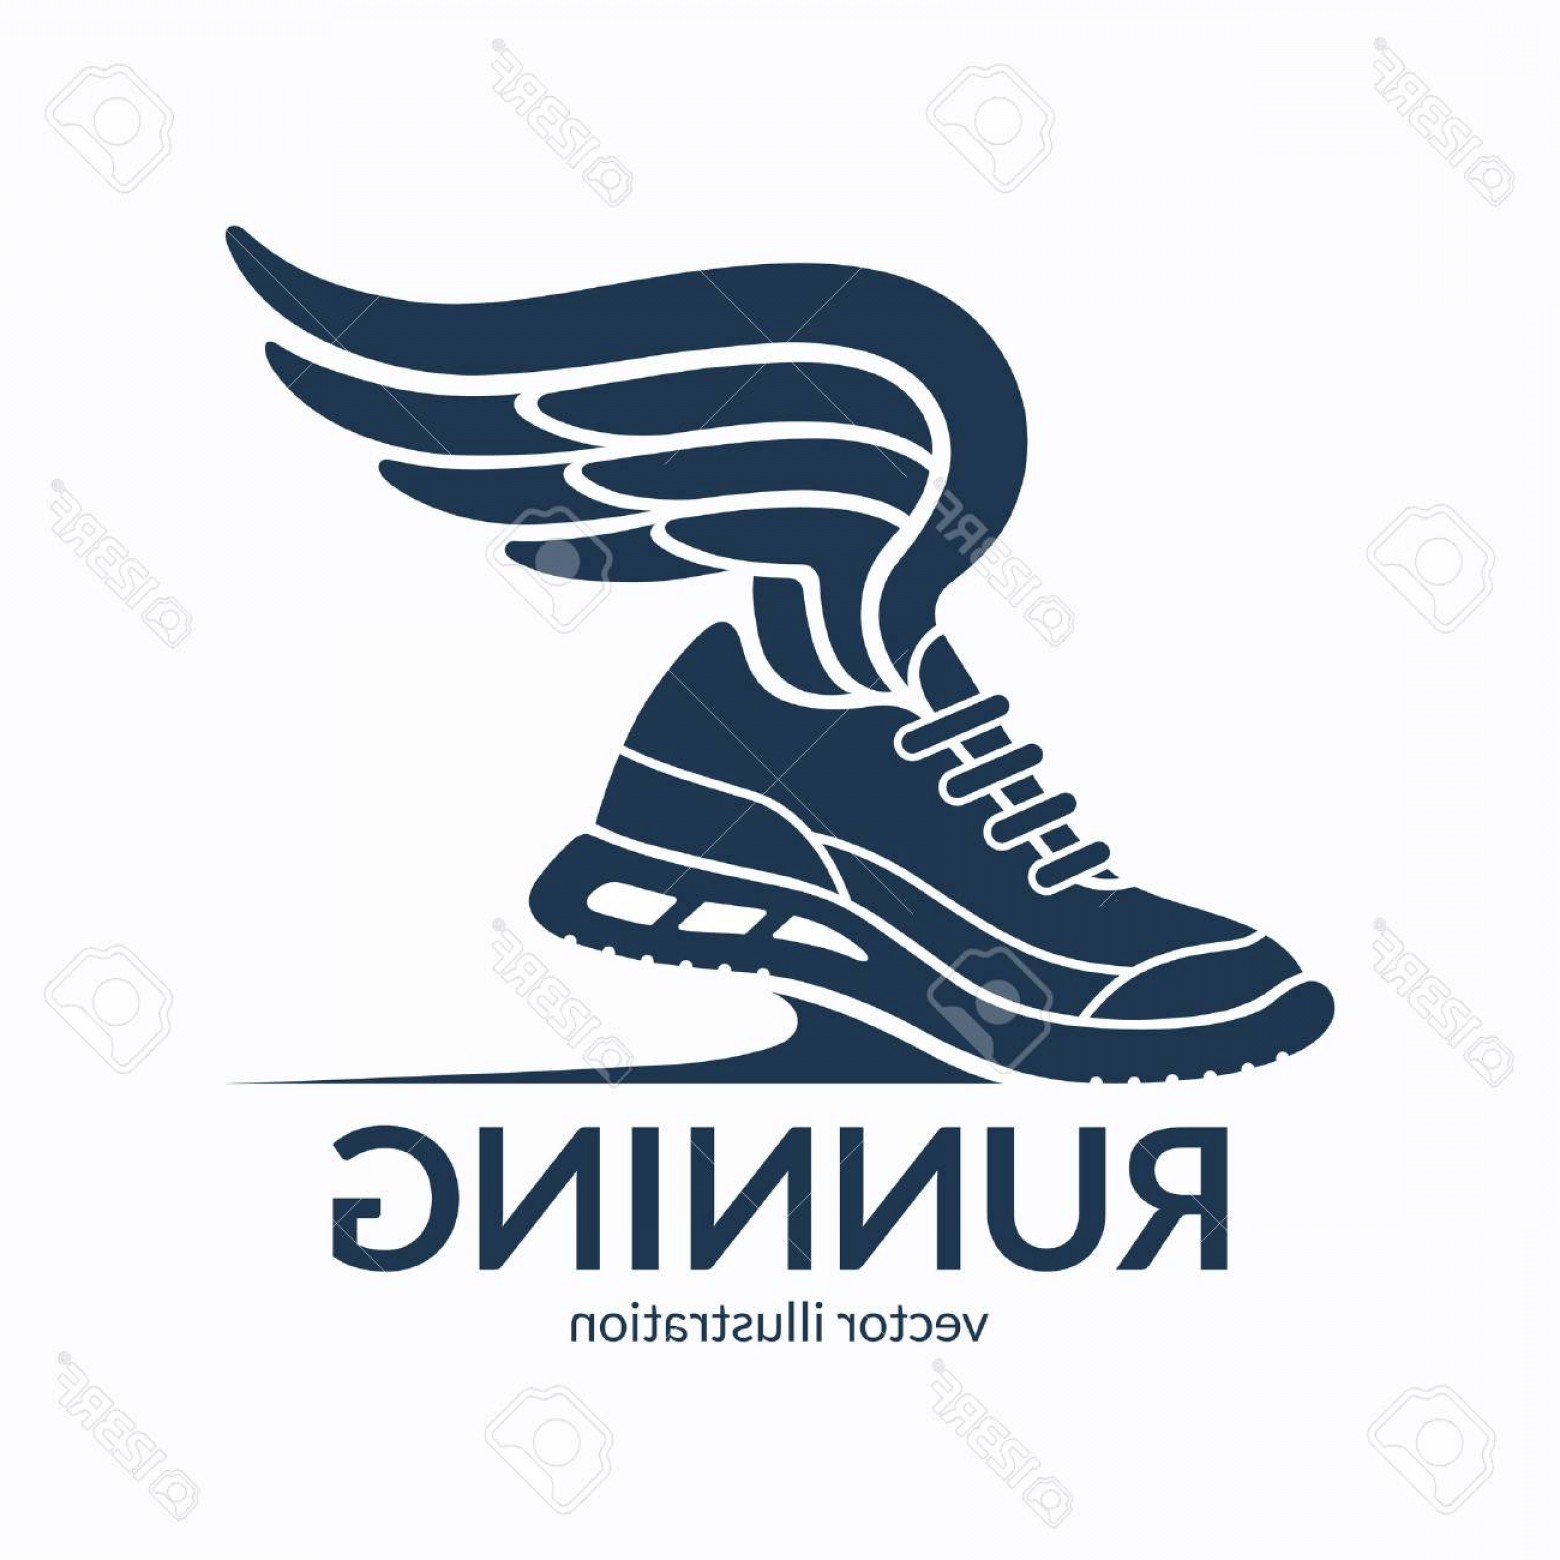 Sneaker Silhouette Vector: Photostock Vector Speeding Running Shoe Symbol Icon Logo Sneaker Silhouette With Wings Vector Illustration